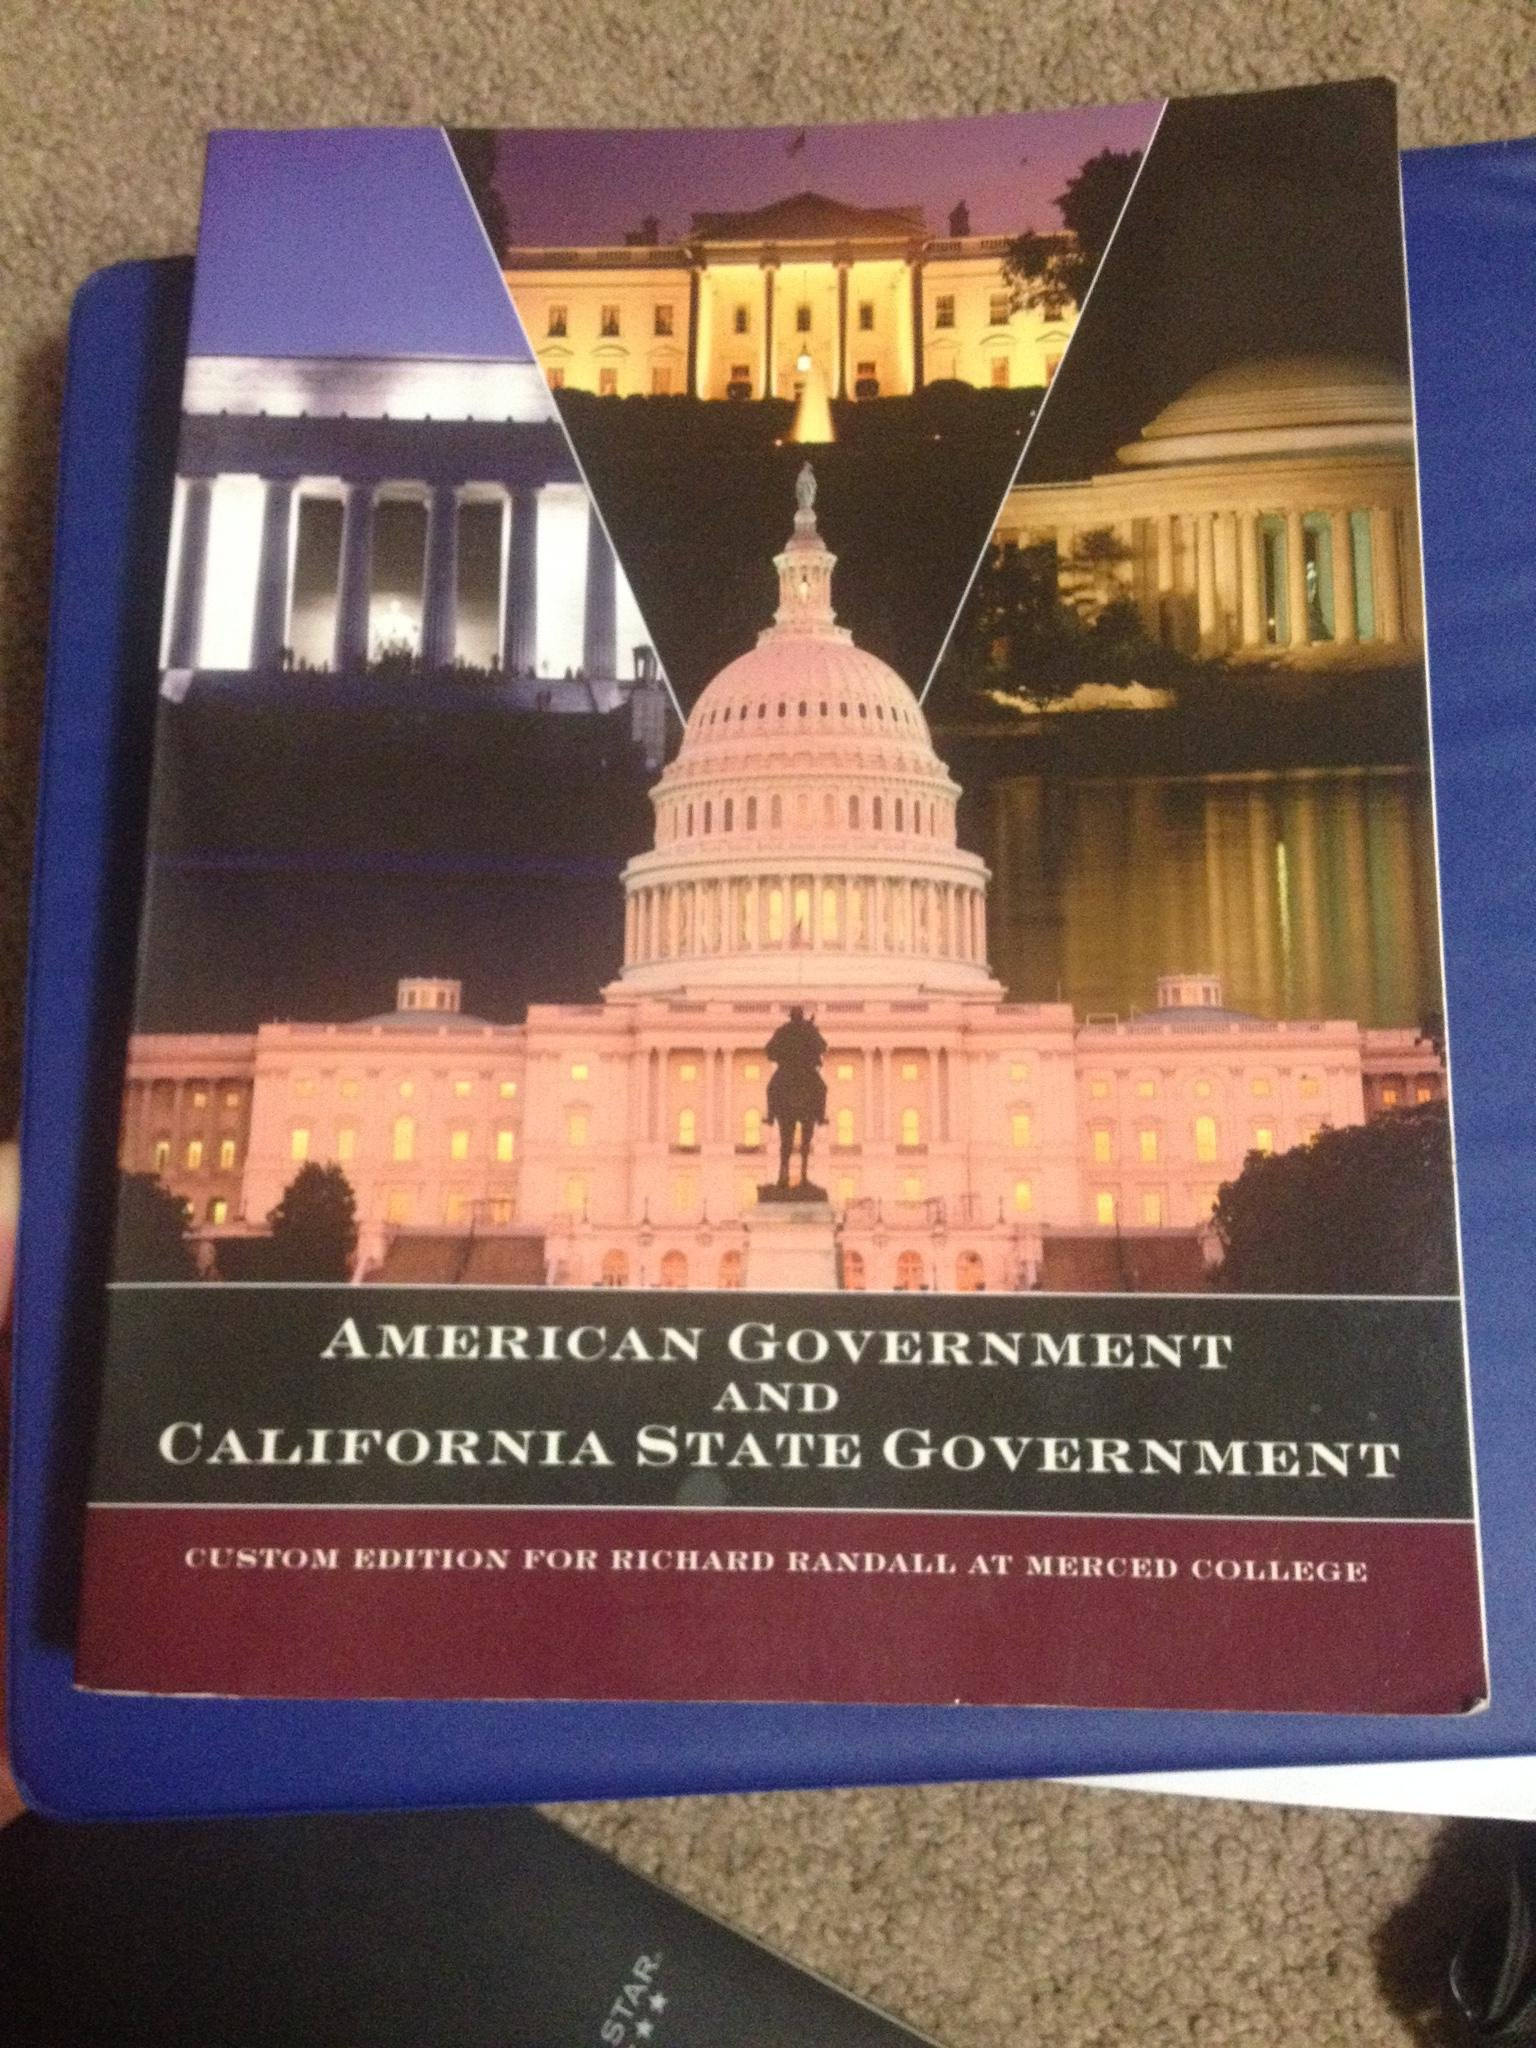 Download American Government and California State Government Custom Edition for Richard Randall at MERCED COLLEGE ebook